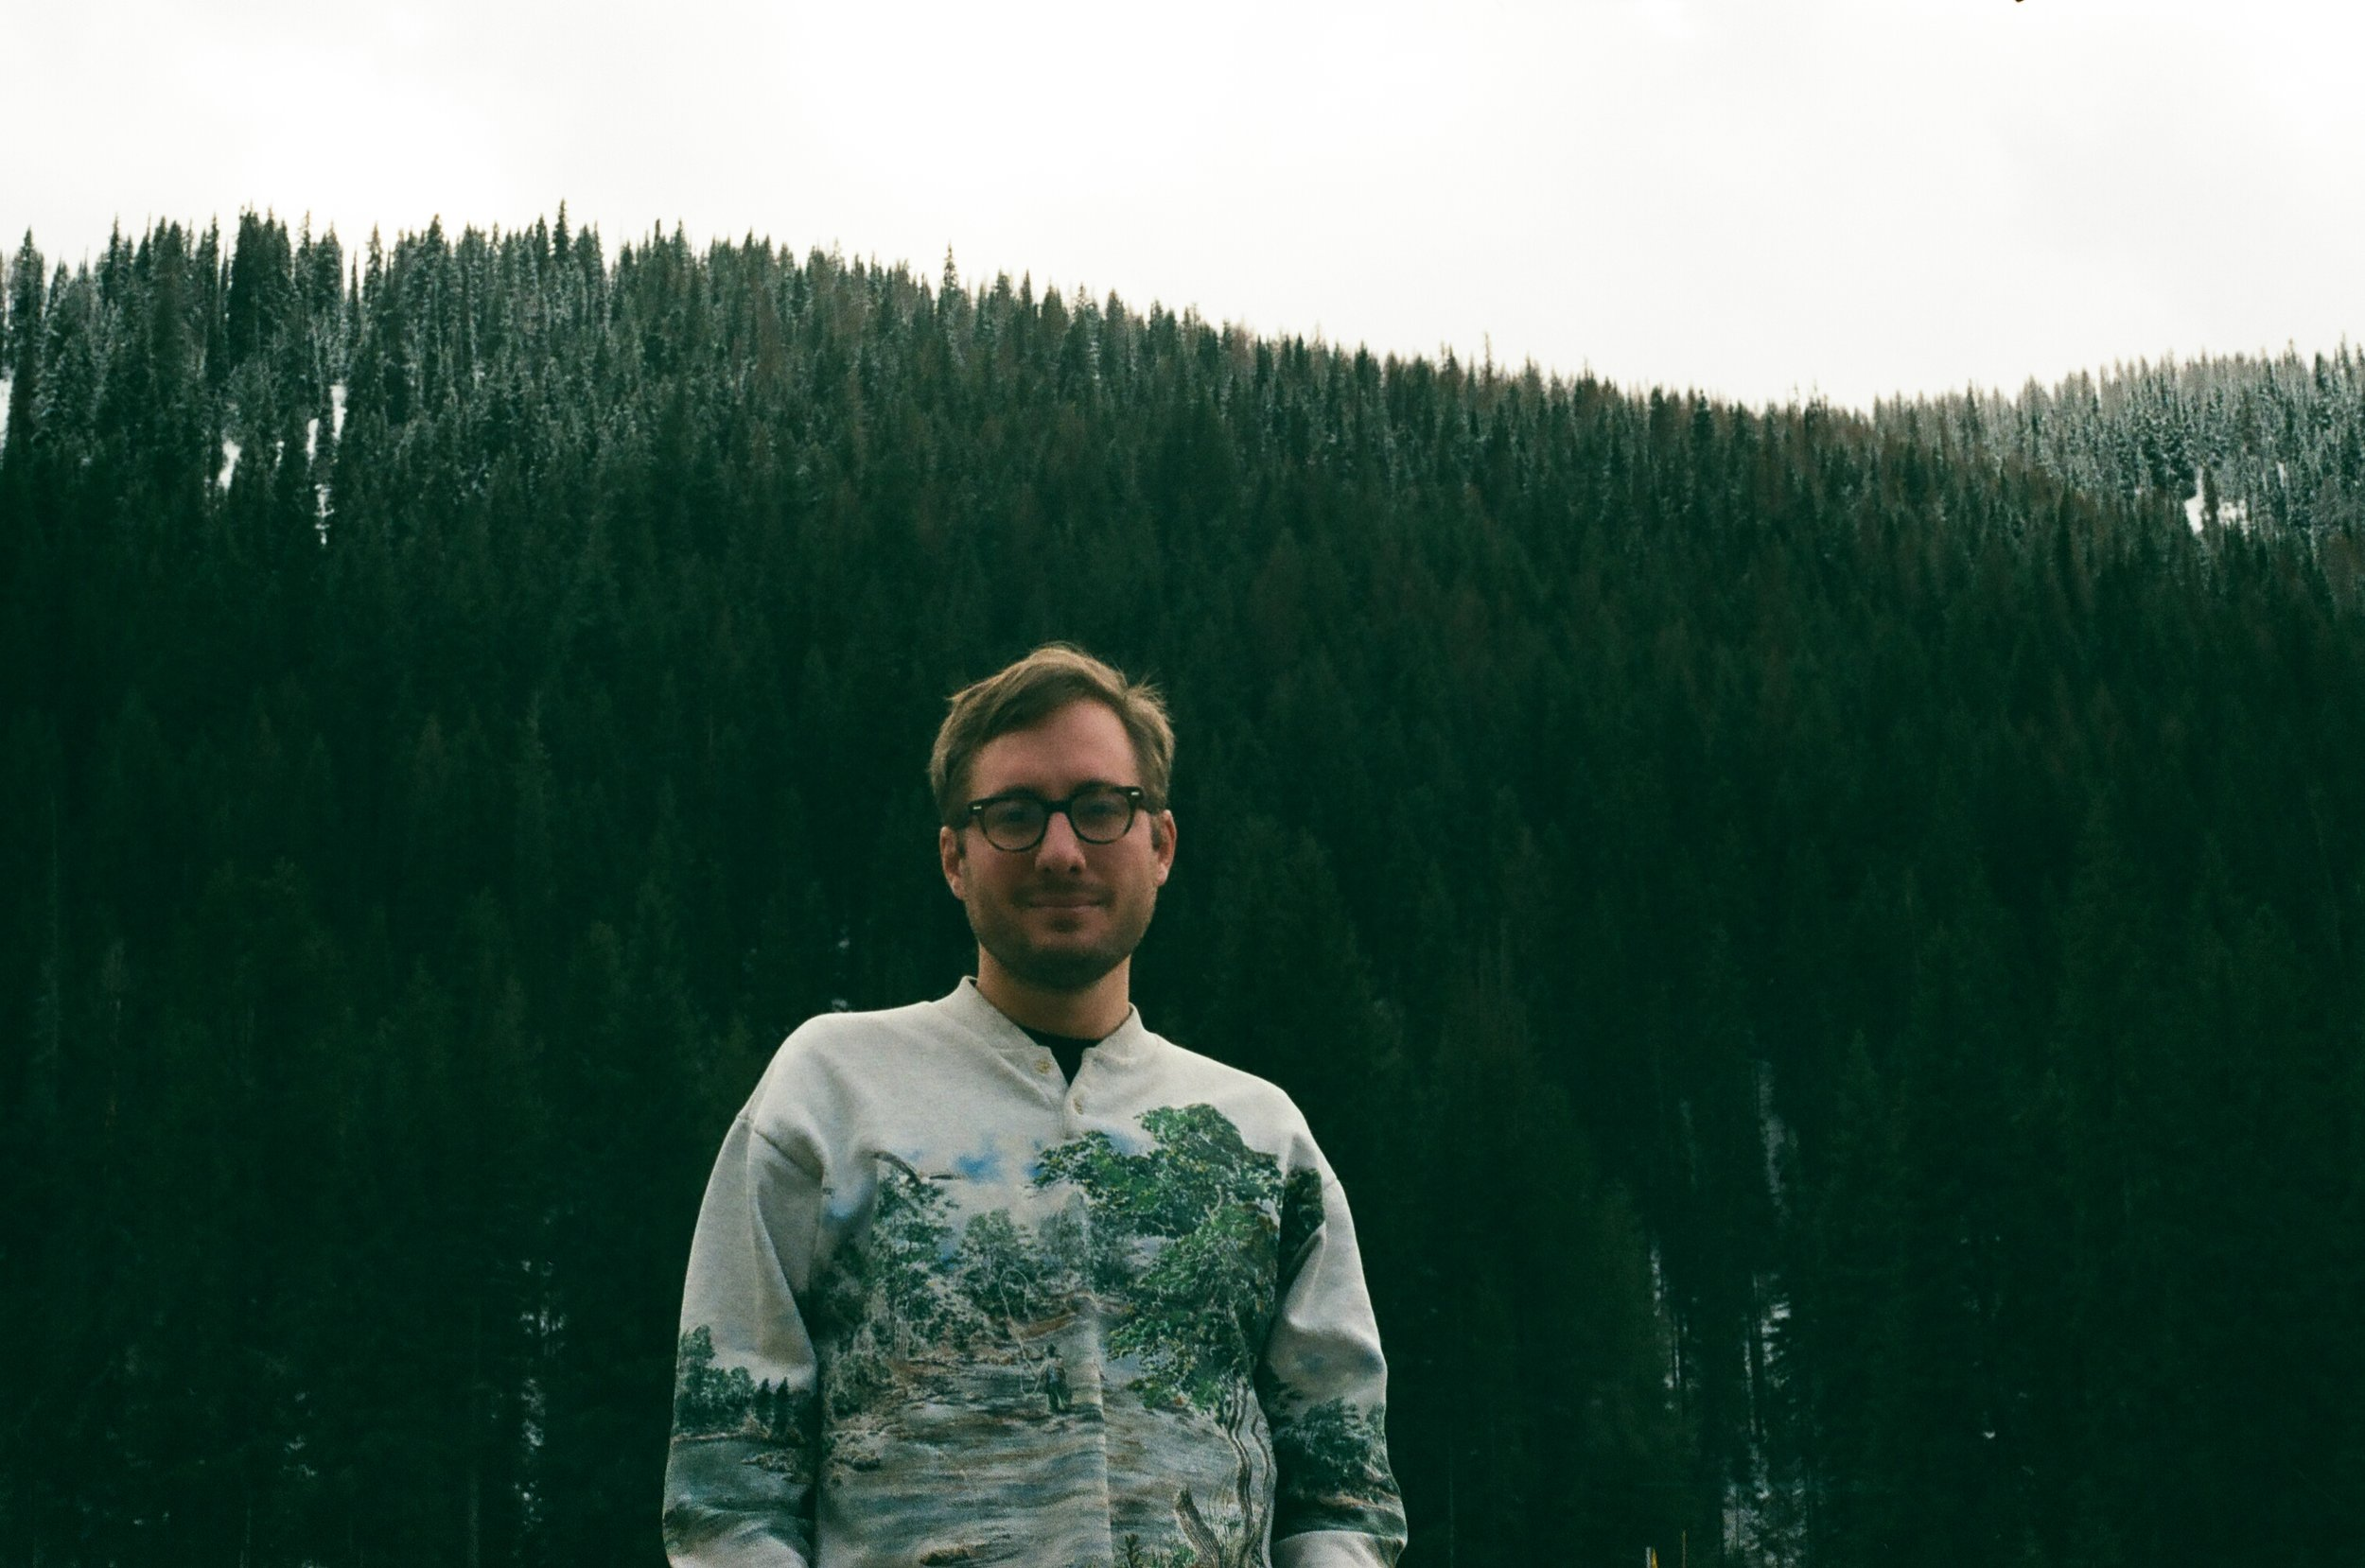 On tour in Washington State earlier this year - 35mm photo by Davey Jones